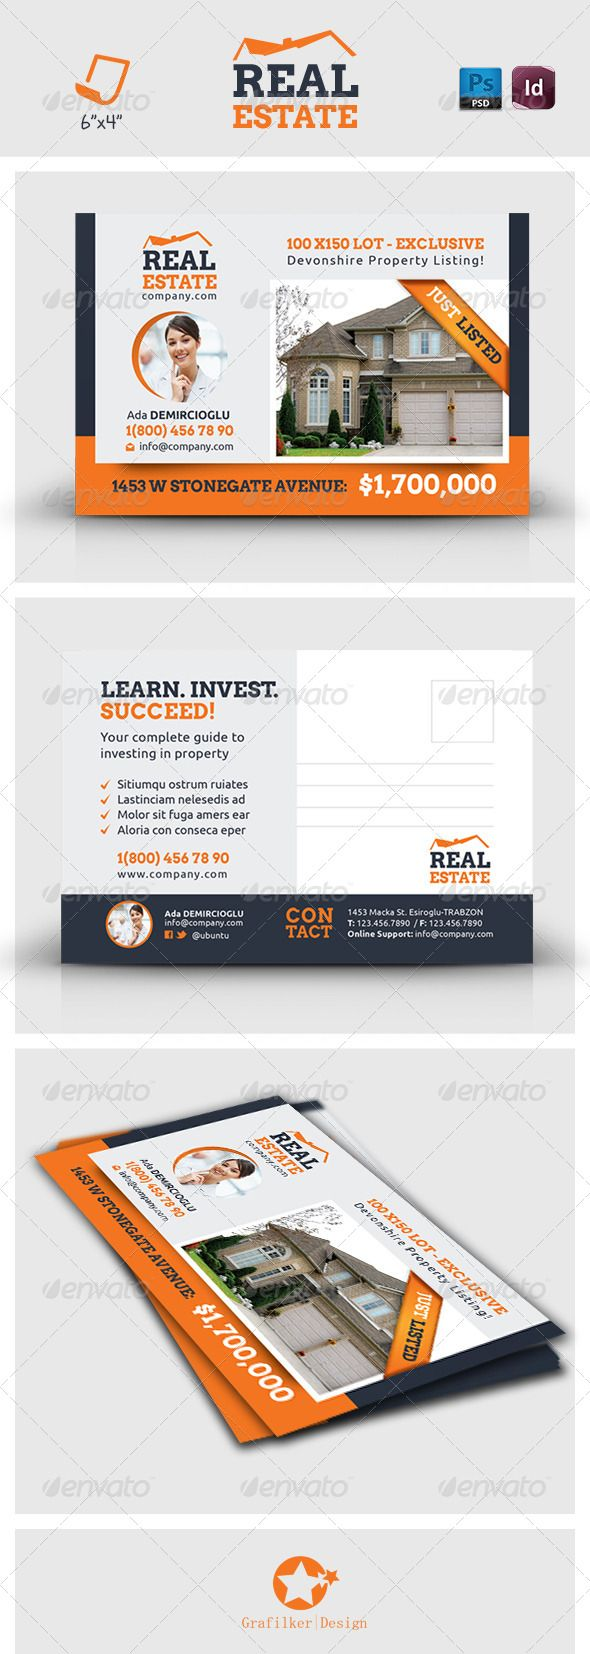 10 best images about real estate postcard design ideas on for Com agent immobilier